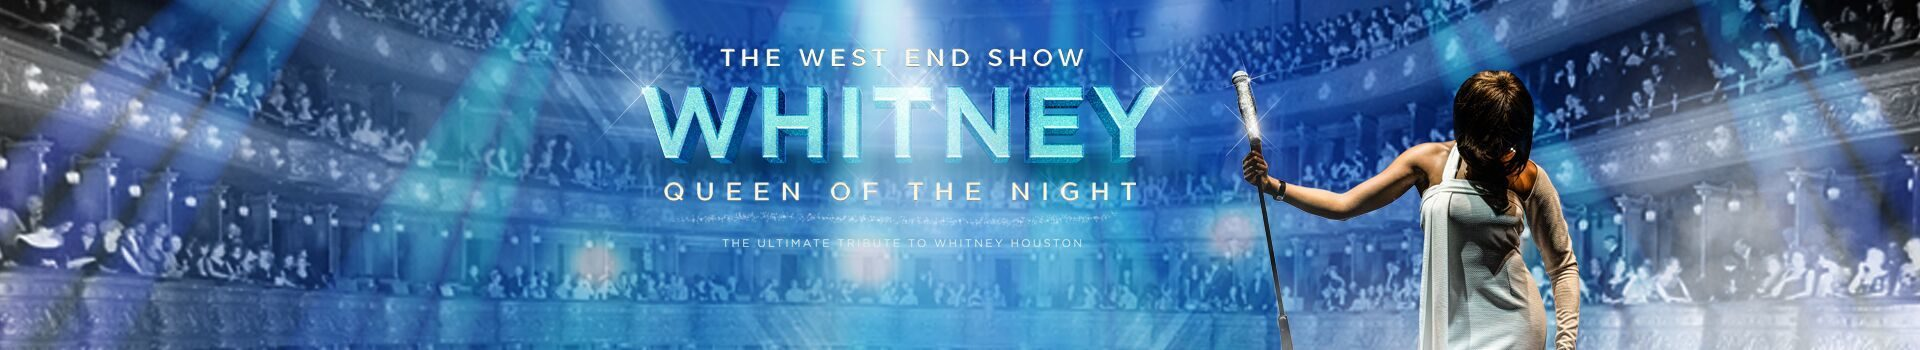 Whitney Queen of the Night - hyllestkonsert